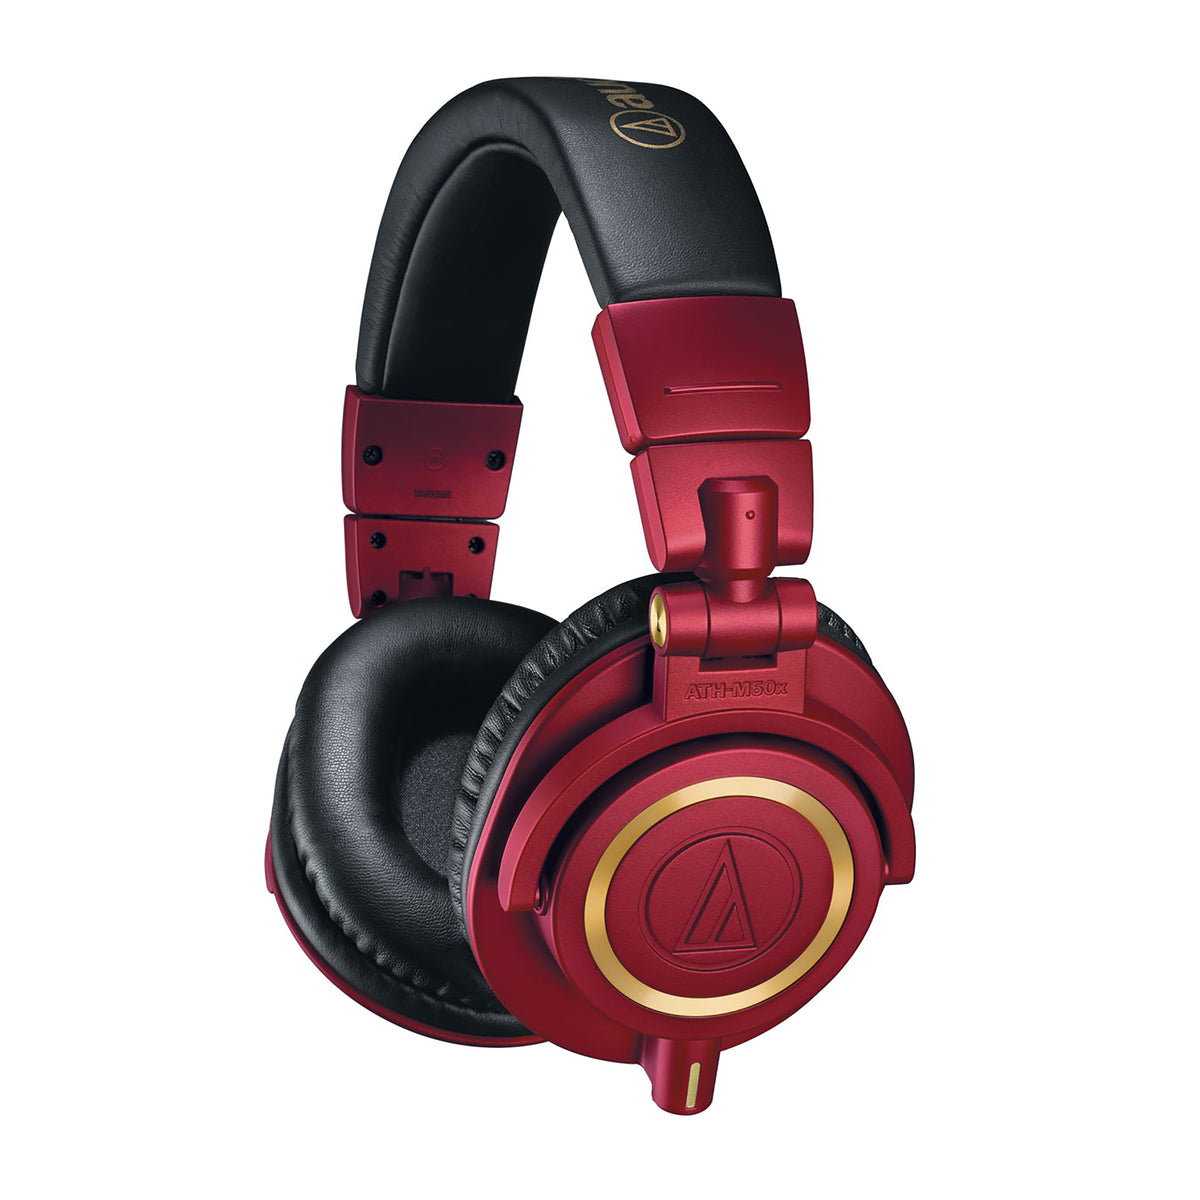 Audio-Technica: ATH-M50XRD Headphones - Limited Edition Red